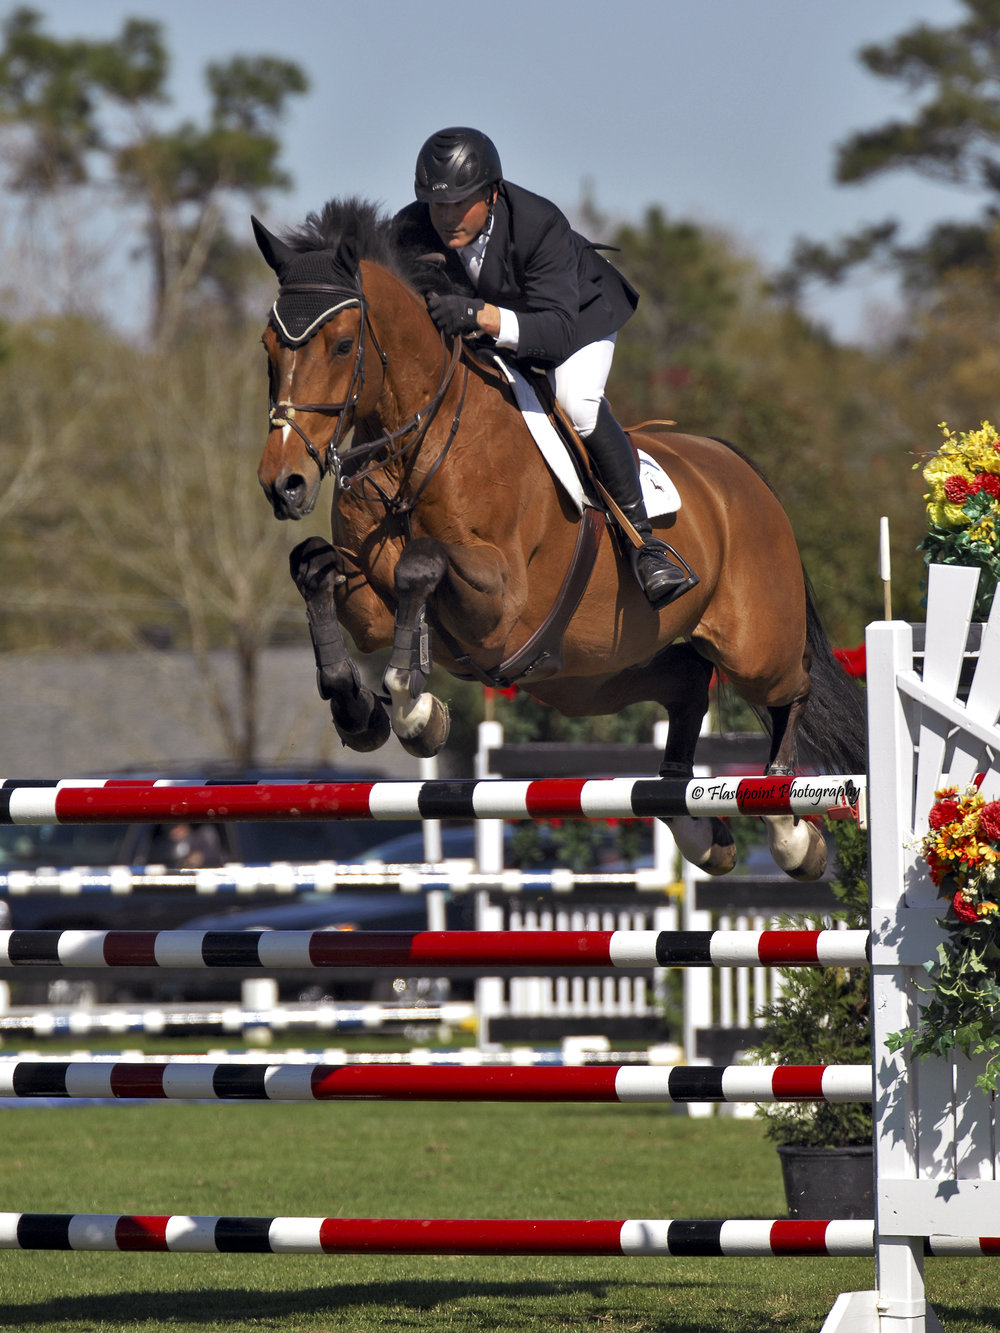 Bob and Dana Brawley - Brawley Farms Inc: 2012 USEF National Horse of the Year, 3'6